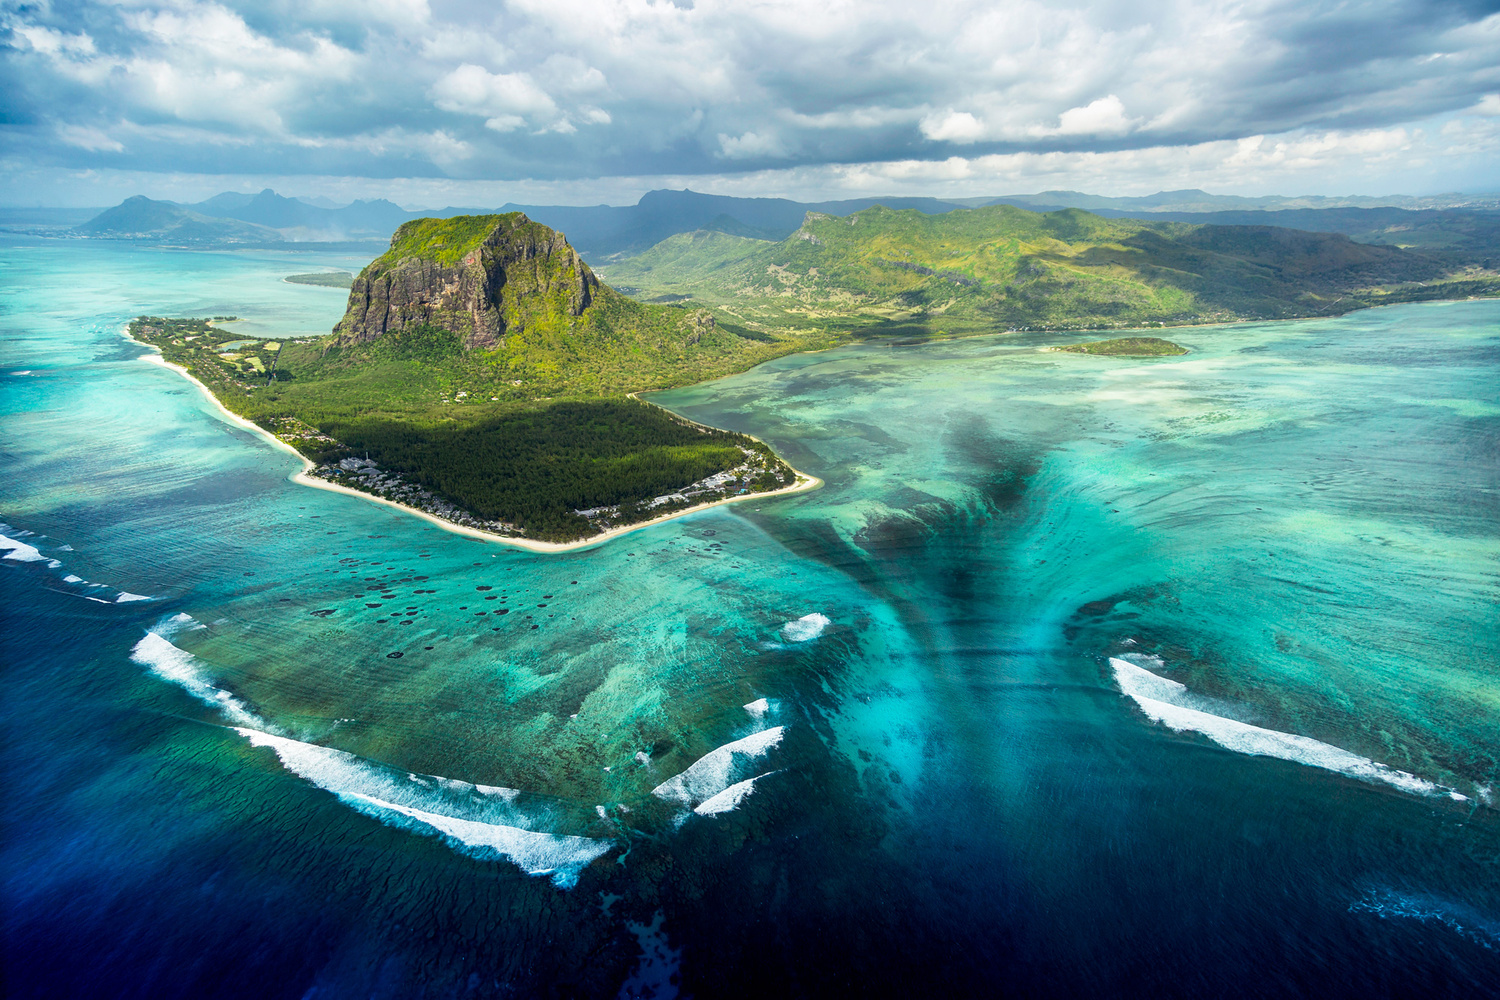 Underwater waterfall by Antoine Buchet